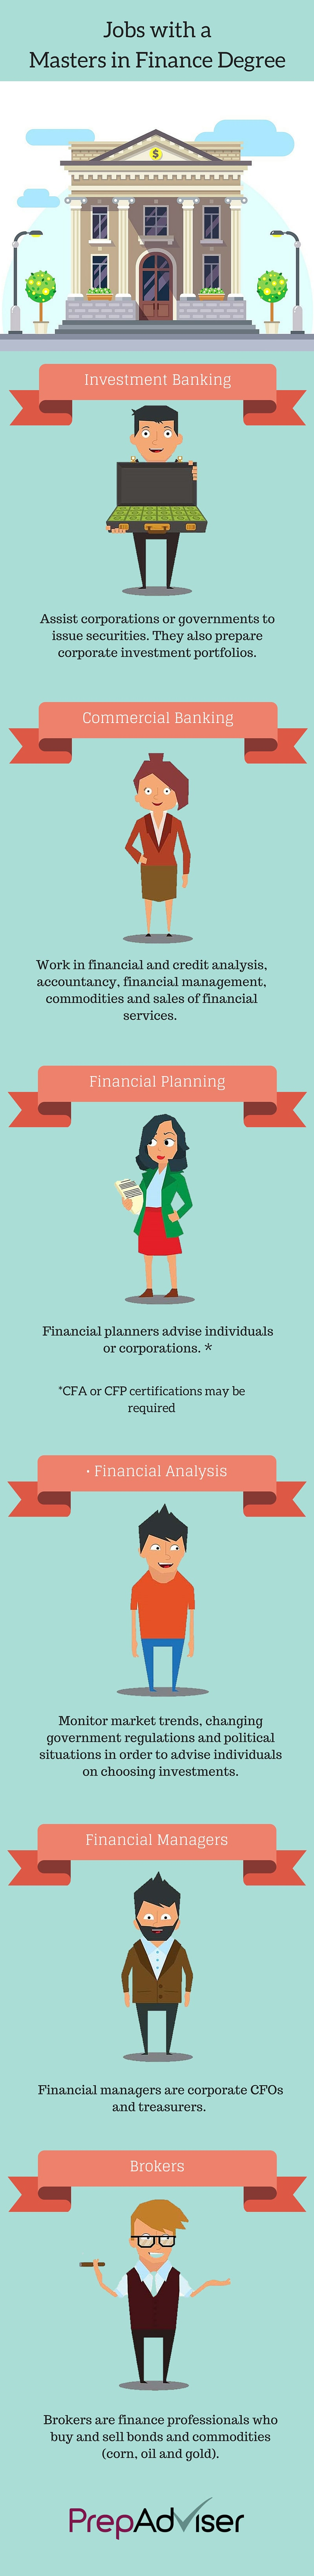 Masters in Finance Career Paths